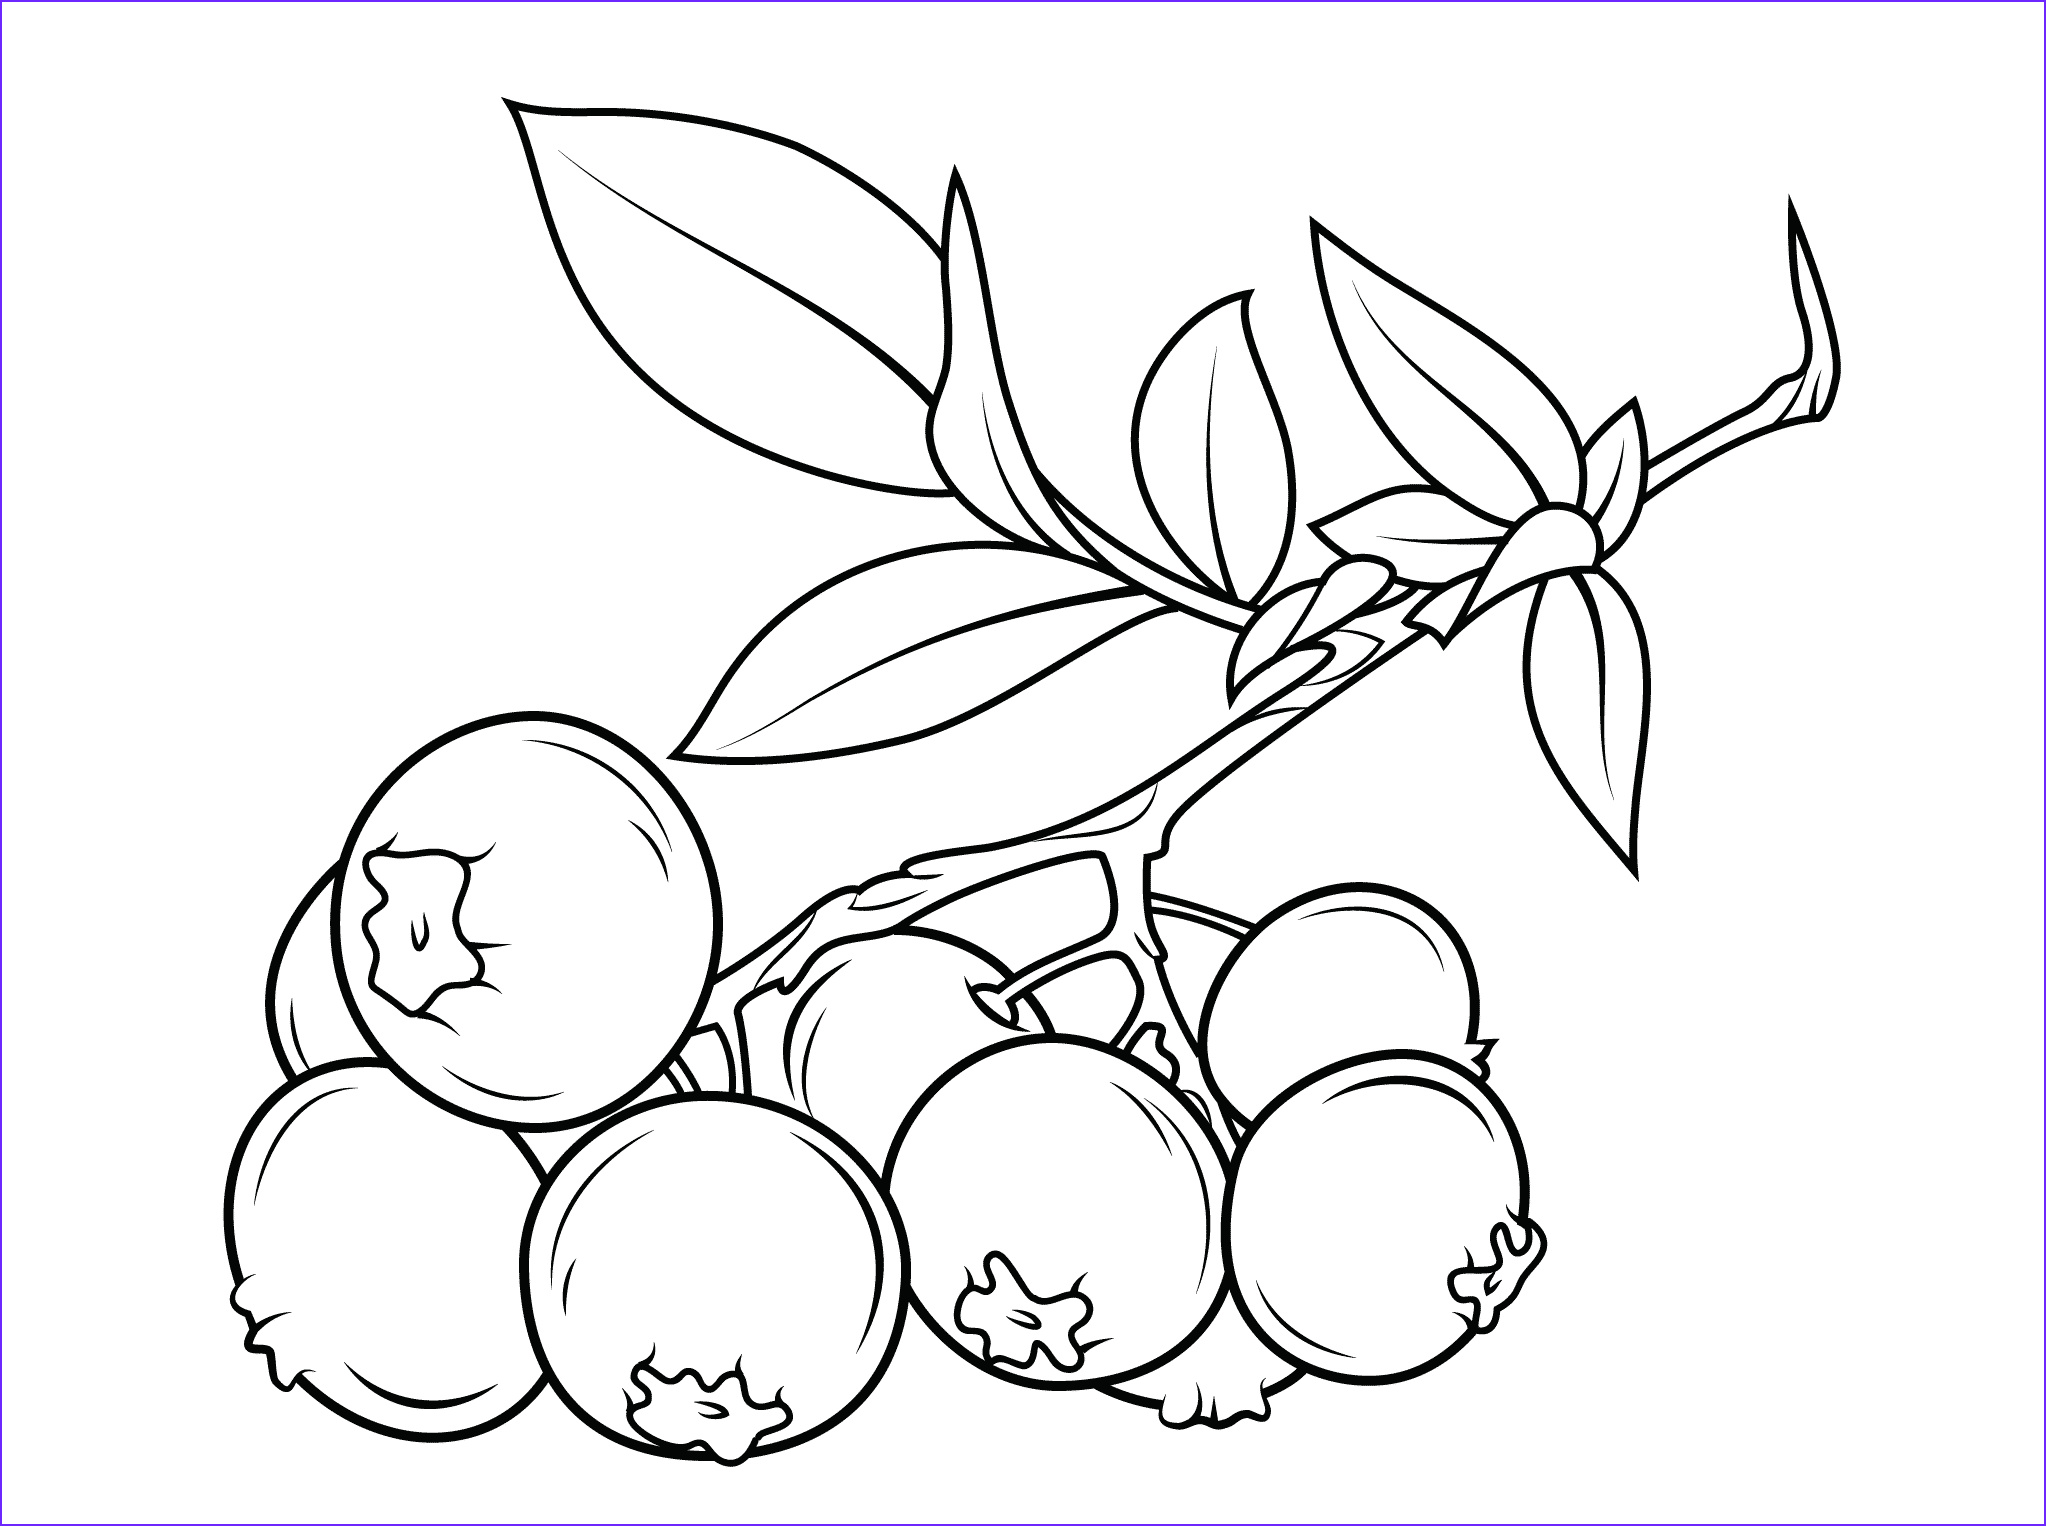 Drawing and Coloring Beautiful Photos Blueberries Coloring Pages to and Print for Free